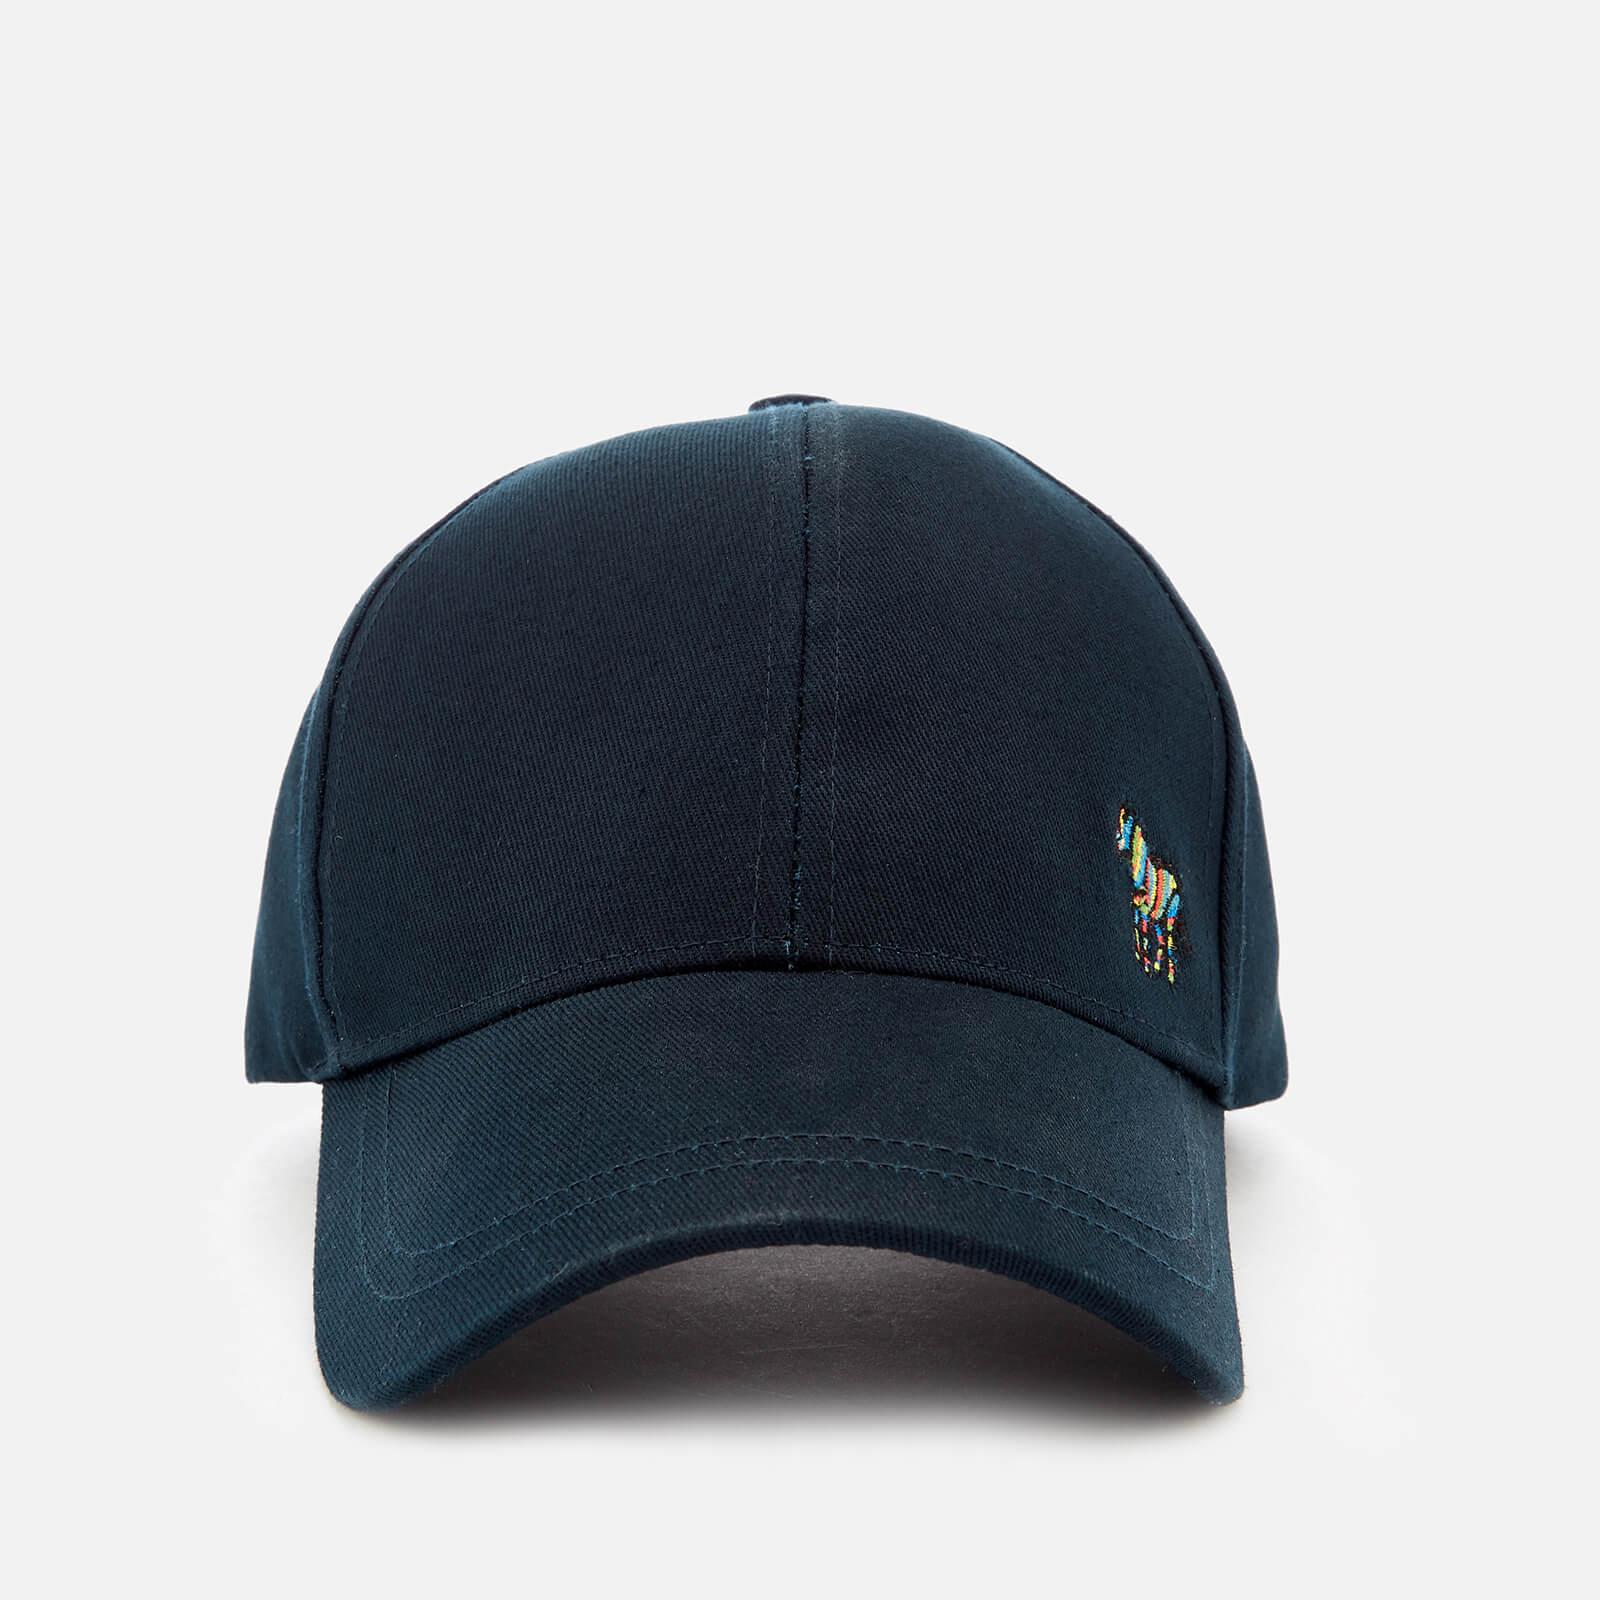 Lyst - Ps By Paul Smith Zebra Baseball Cap in Blue for Men - Save ... ef281ac675a7